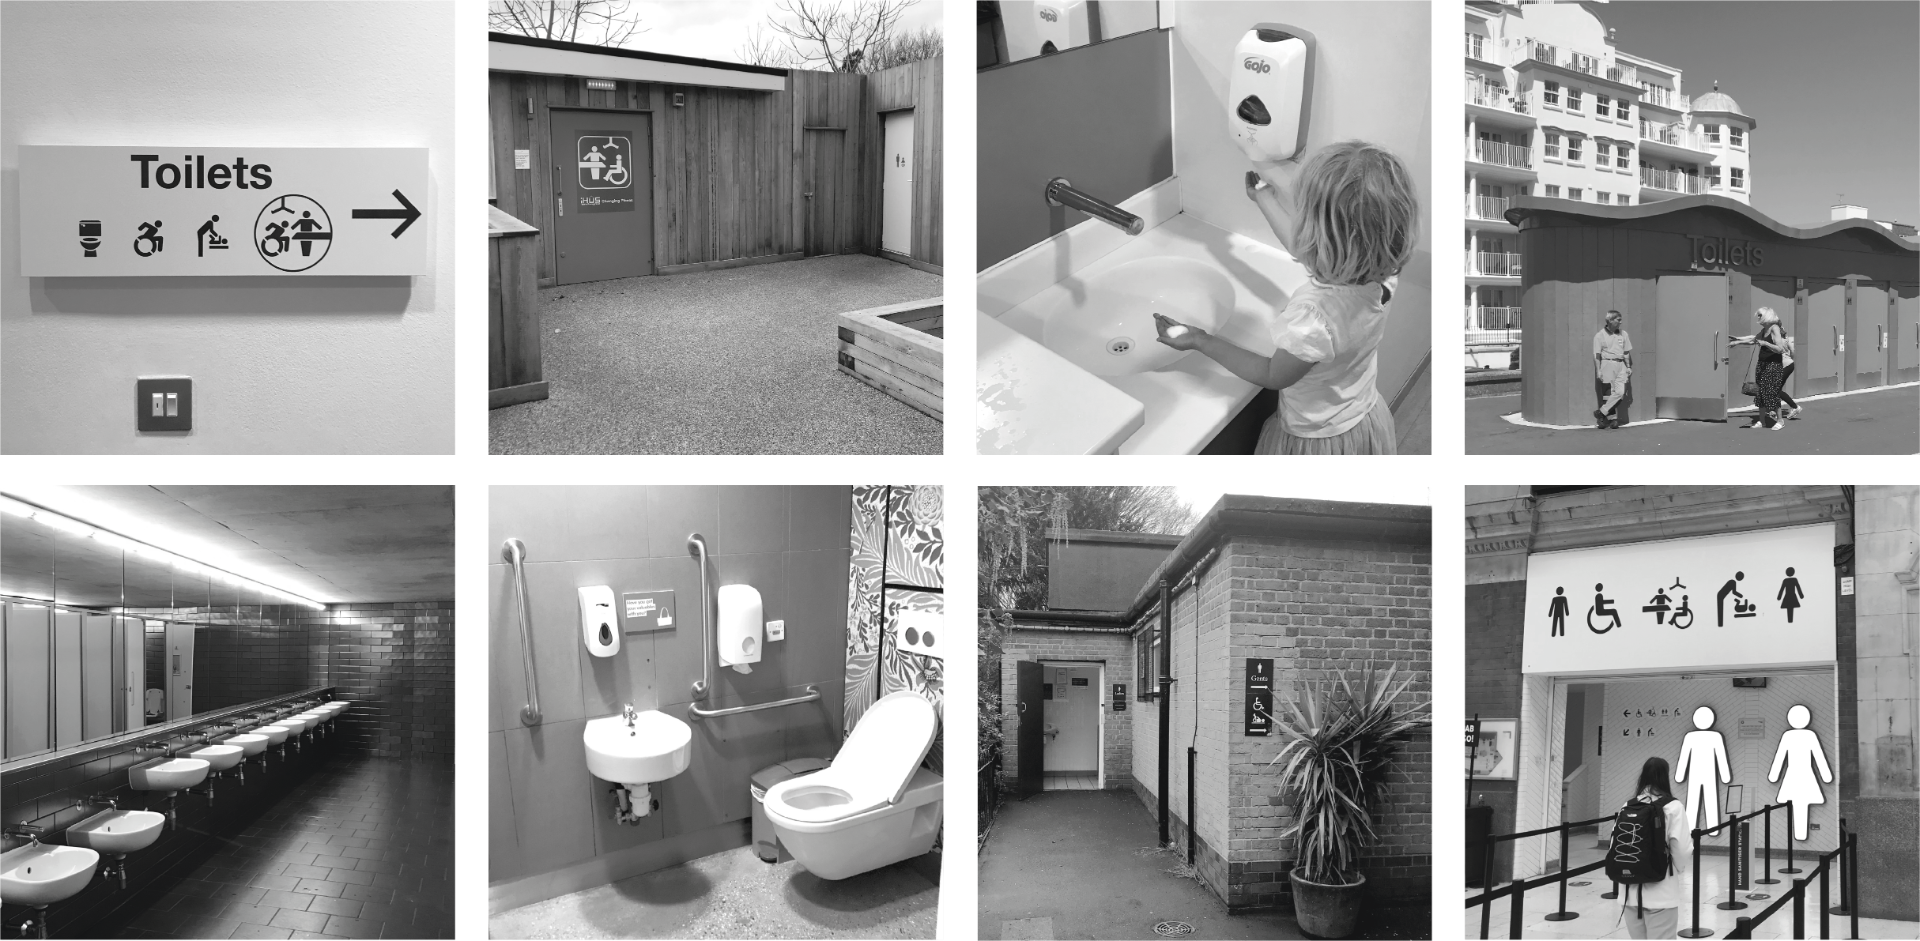 Eight black and white images of toilets showing: inclusive signage, Changing Places, children's sink, seaside toilets, row of sinks, accessible toilet, park toilet, station signage